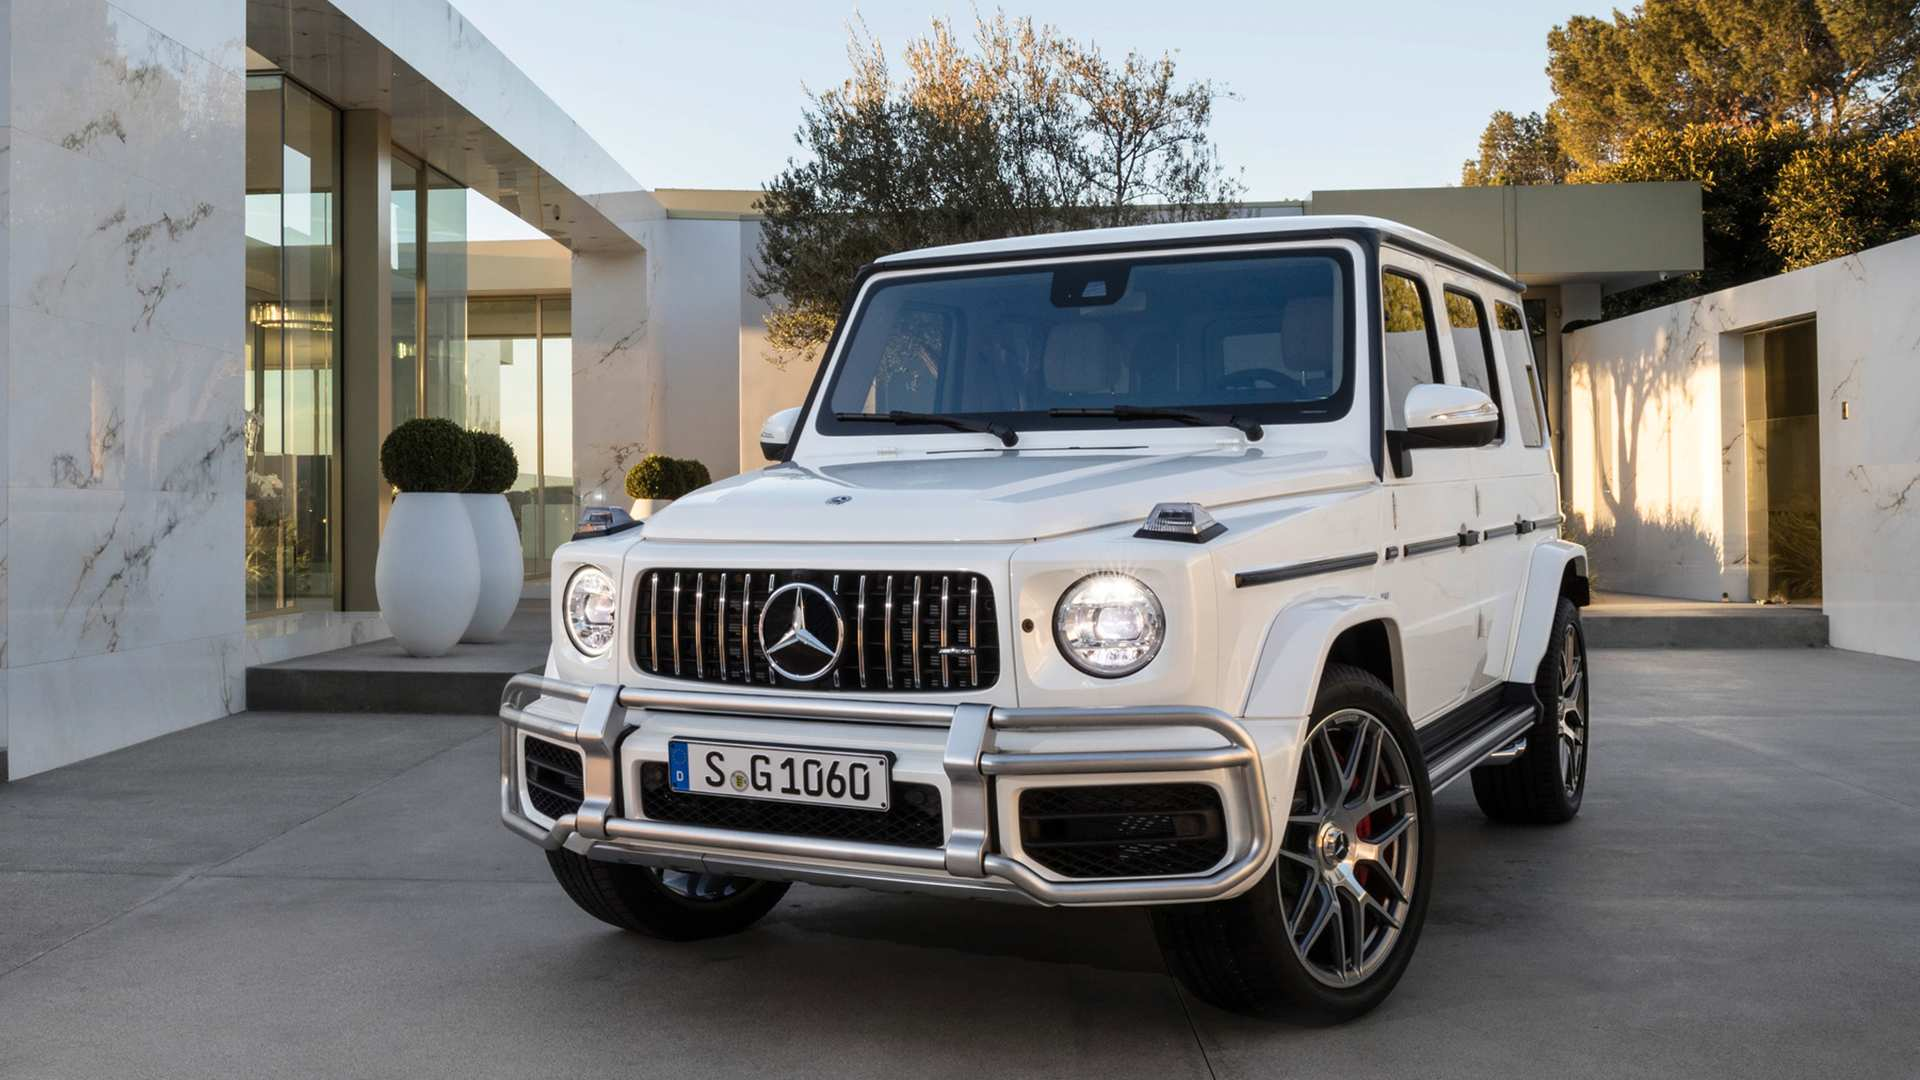 34 New Mercedes G Class 2019 Youtube Review And Price Style for Mercedes G Class 2019 Youtube Review And Price